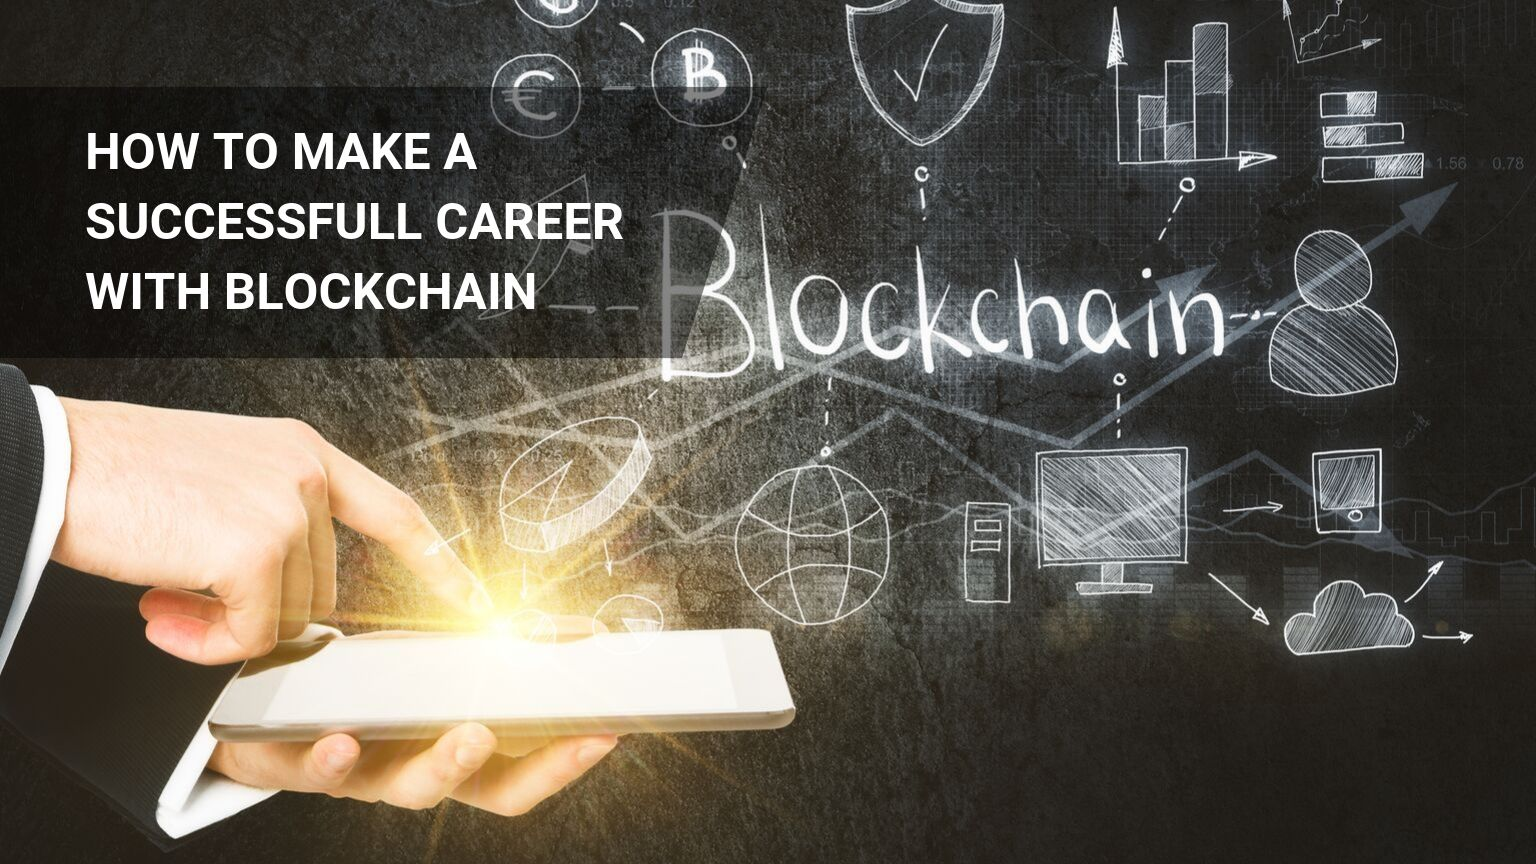 10 ways to make a successful blockchain career